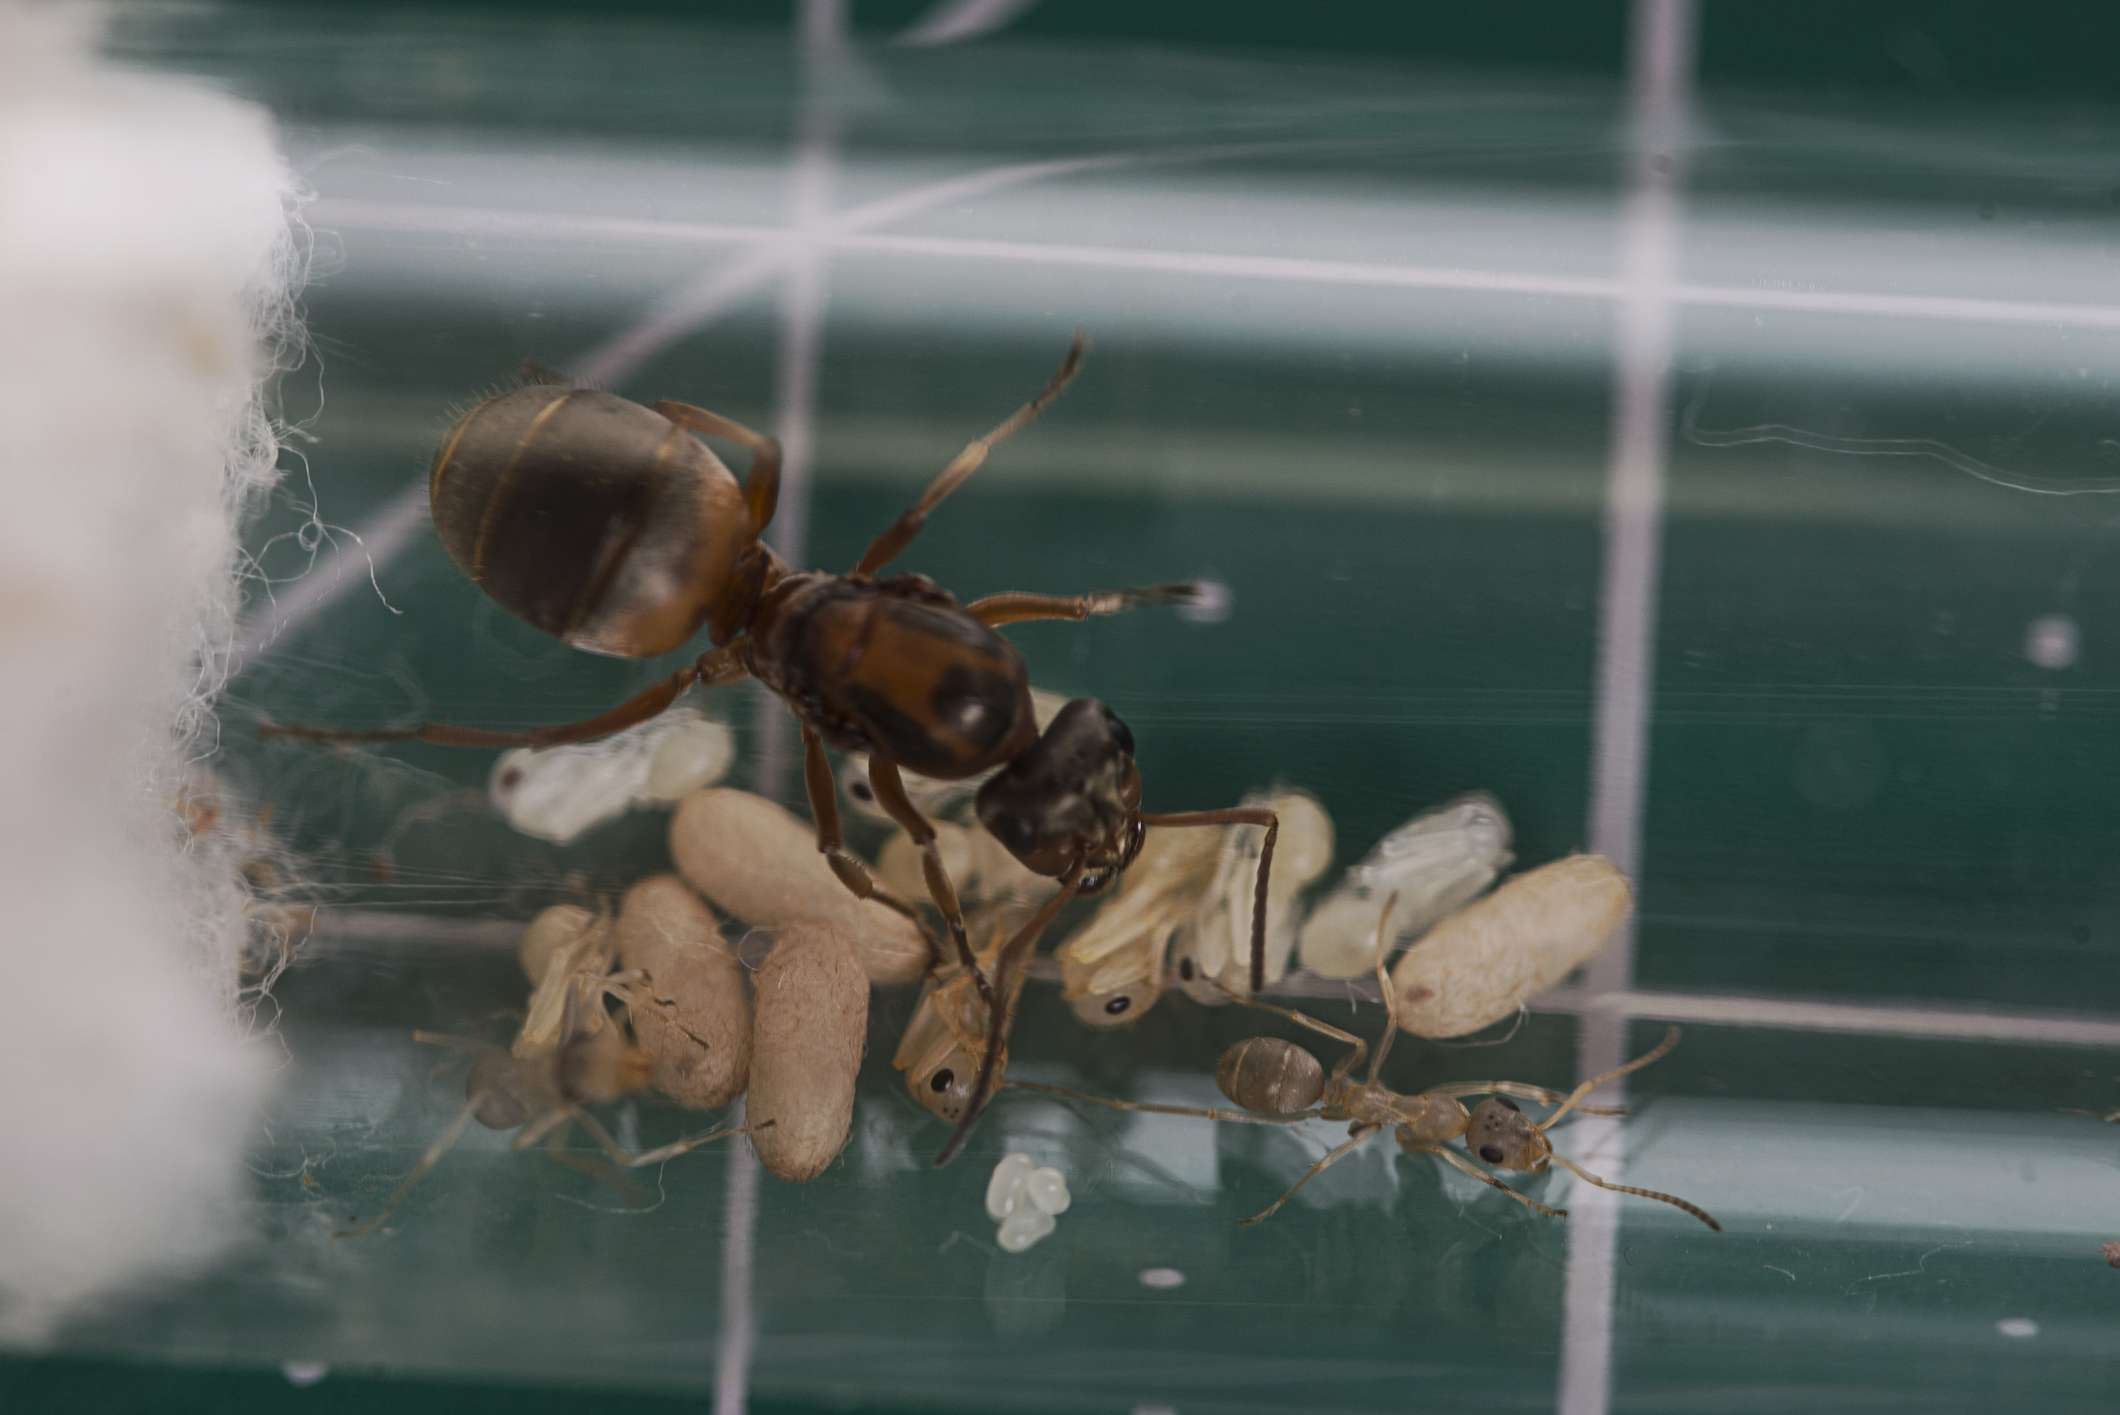 A red barbed ant in a test tube on a counter